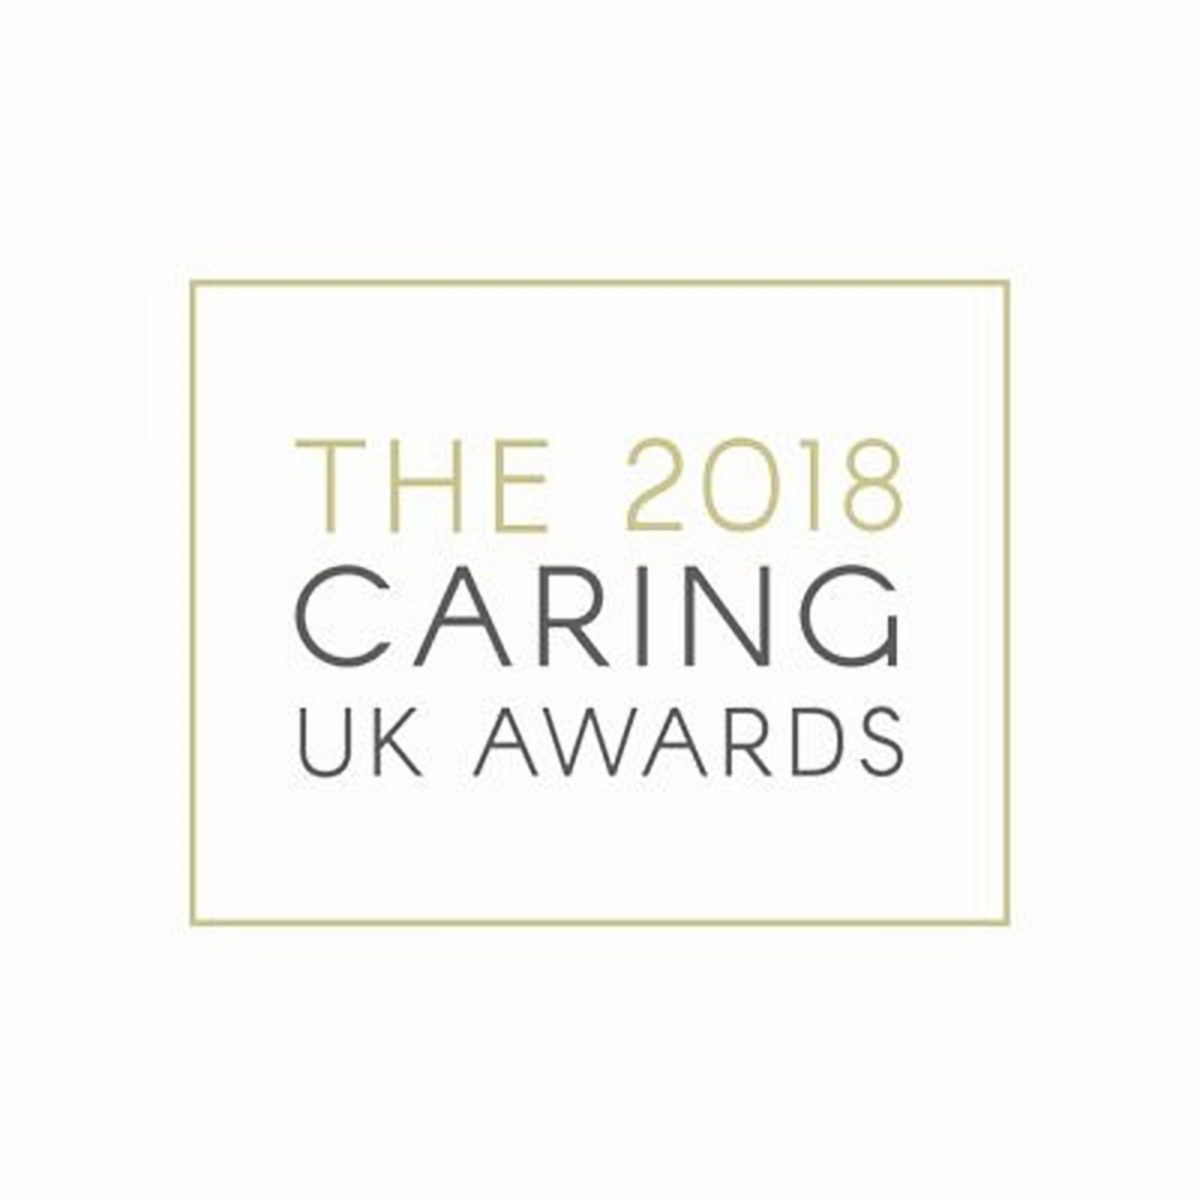 Caring UK Awards 2018 winners